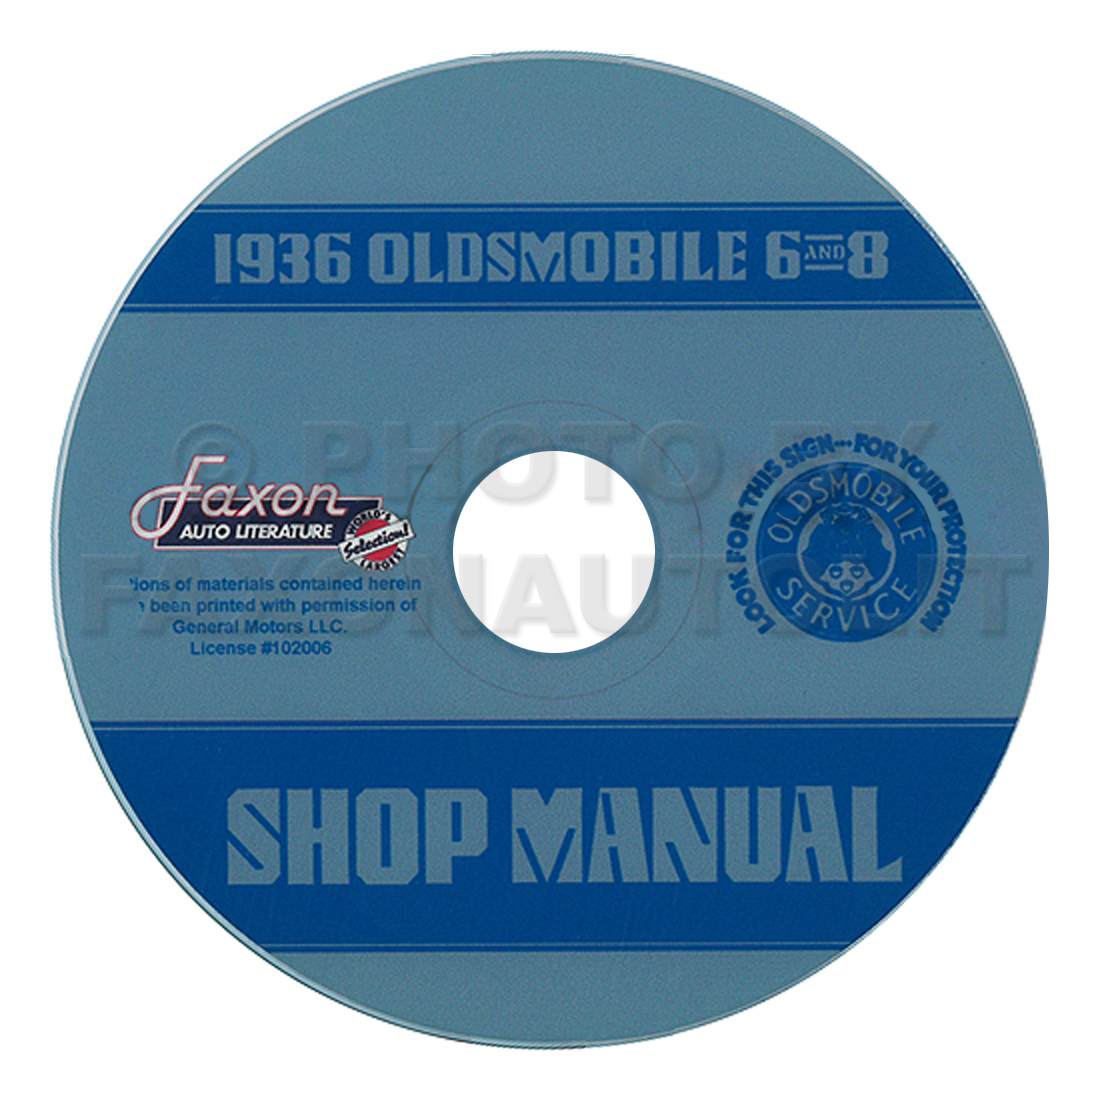 1936 Oldsmobile 6 and 8 CD-ROM Repair Shop Manual